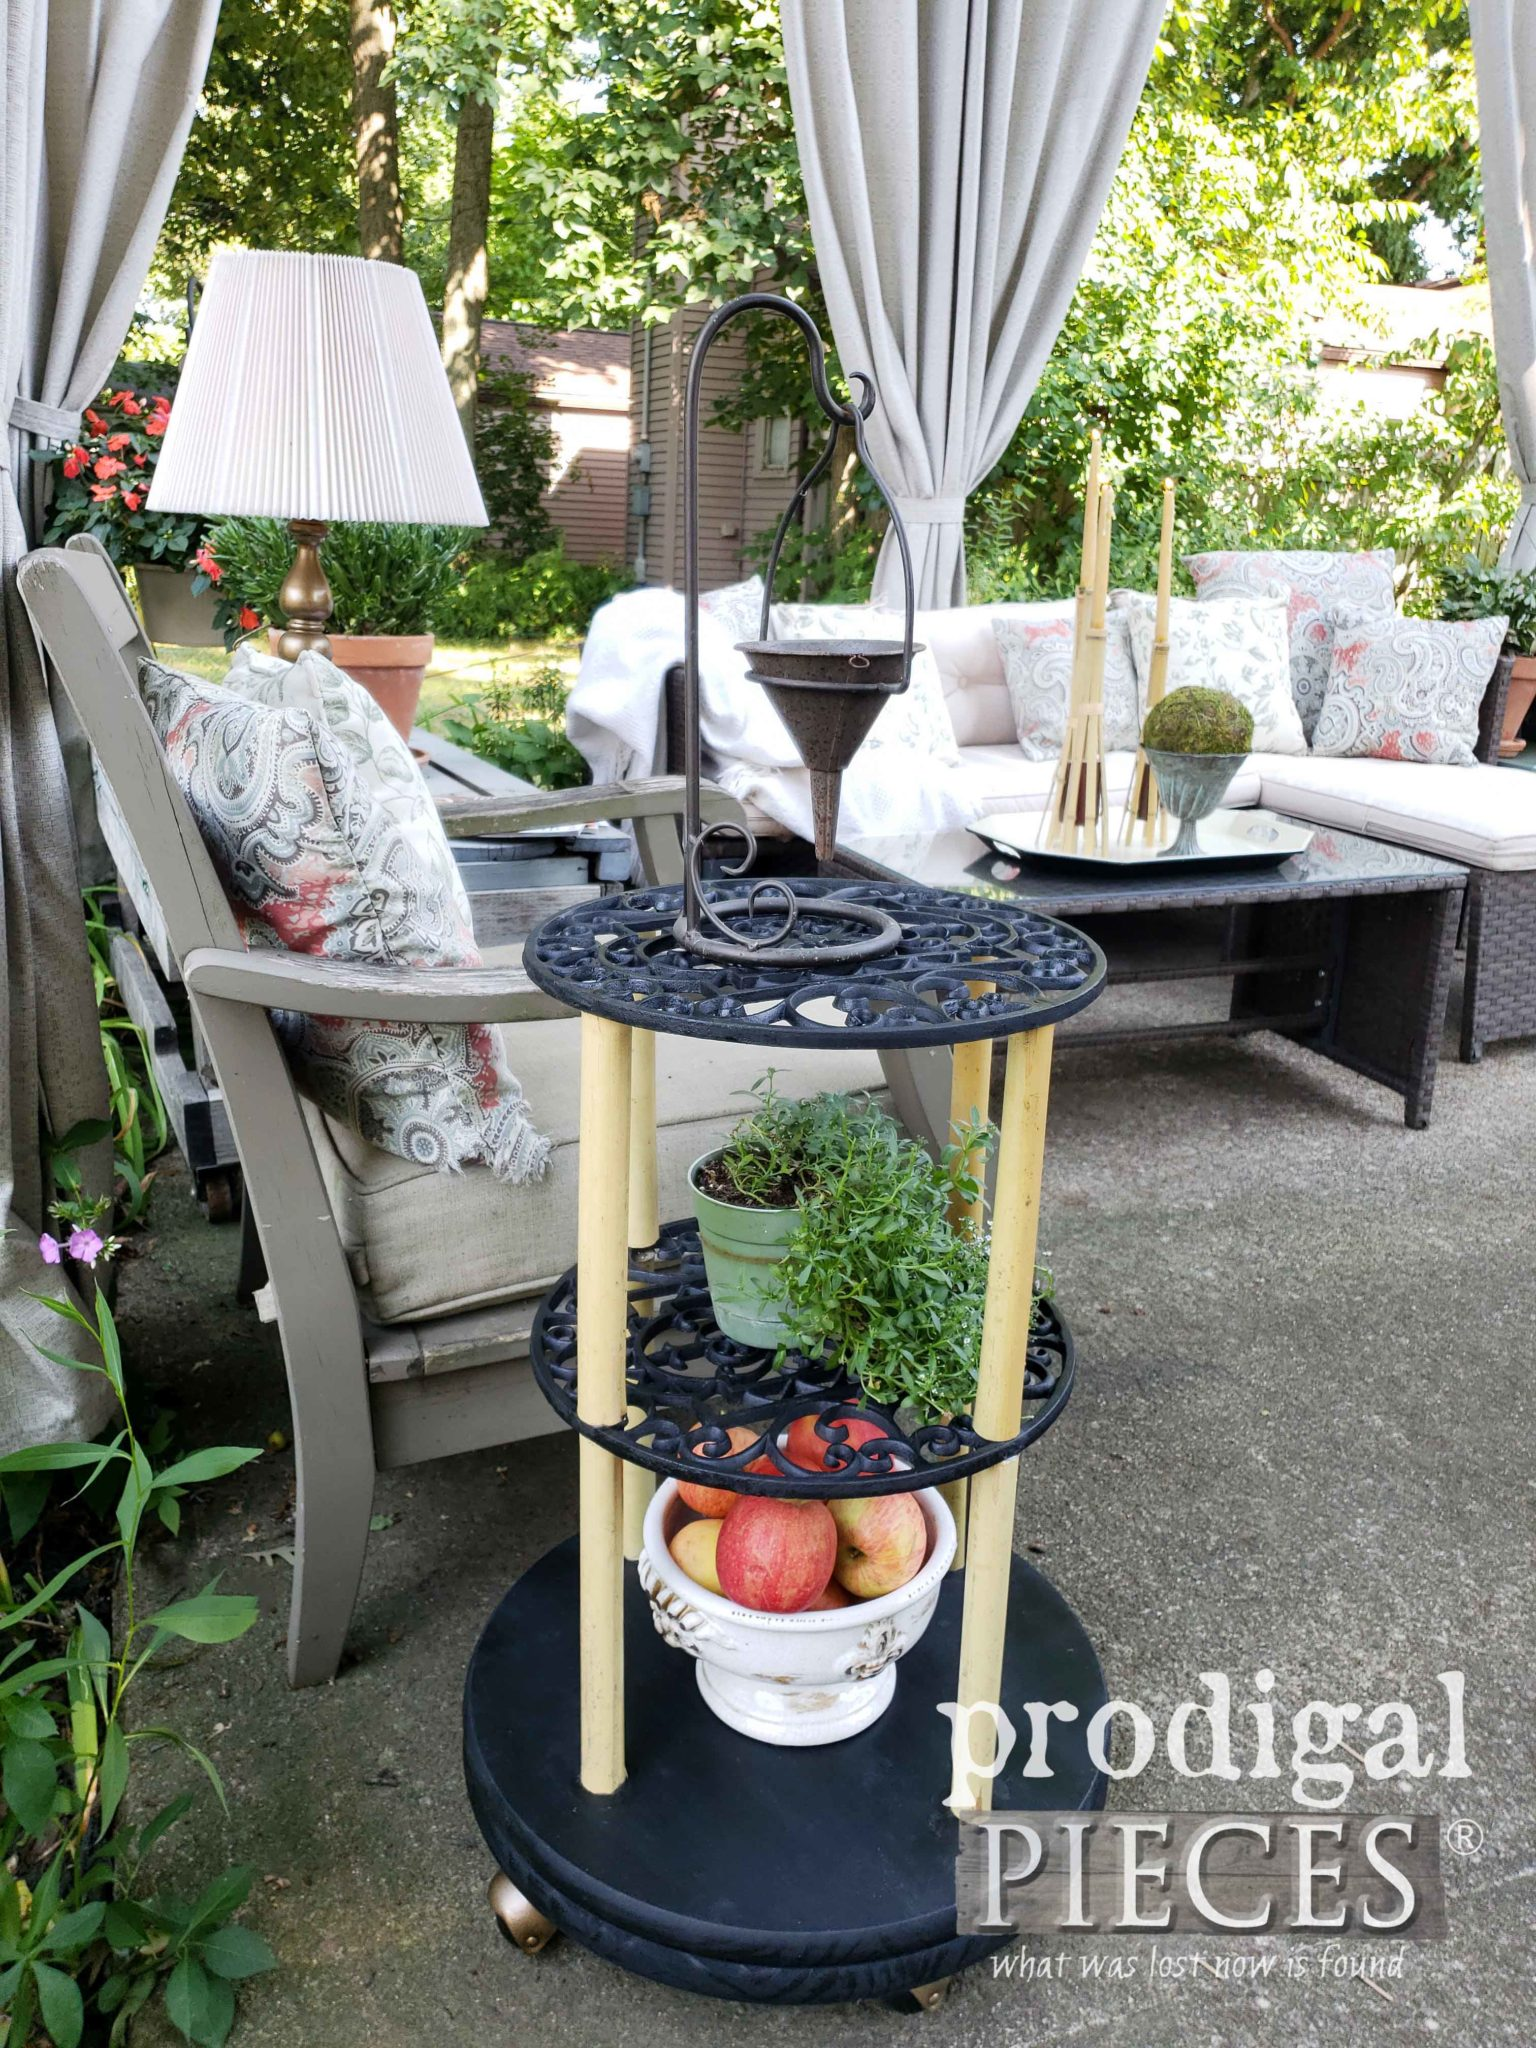 Upcycled Side Table Made from Cast-Off Plant Caddy's and Bamboo Torch | Repurposing Fun at Prodigal Pieces | prodigalpieces.com